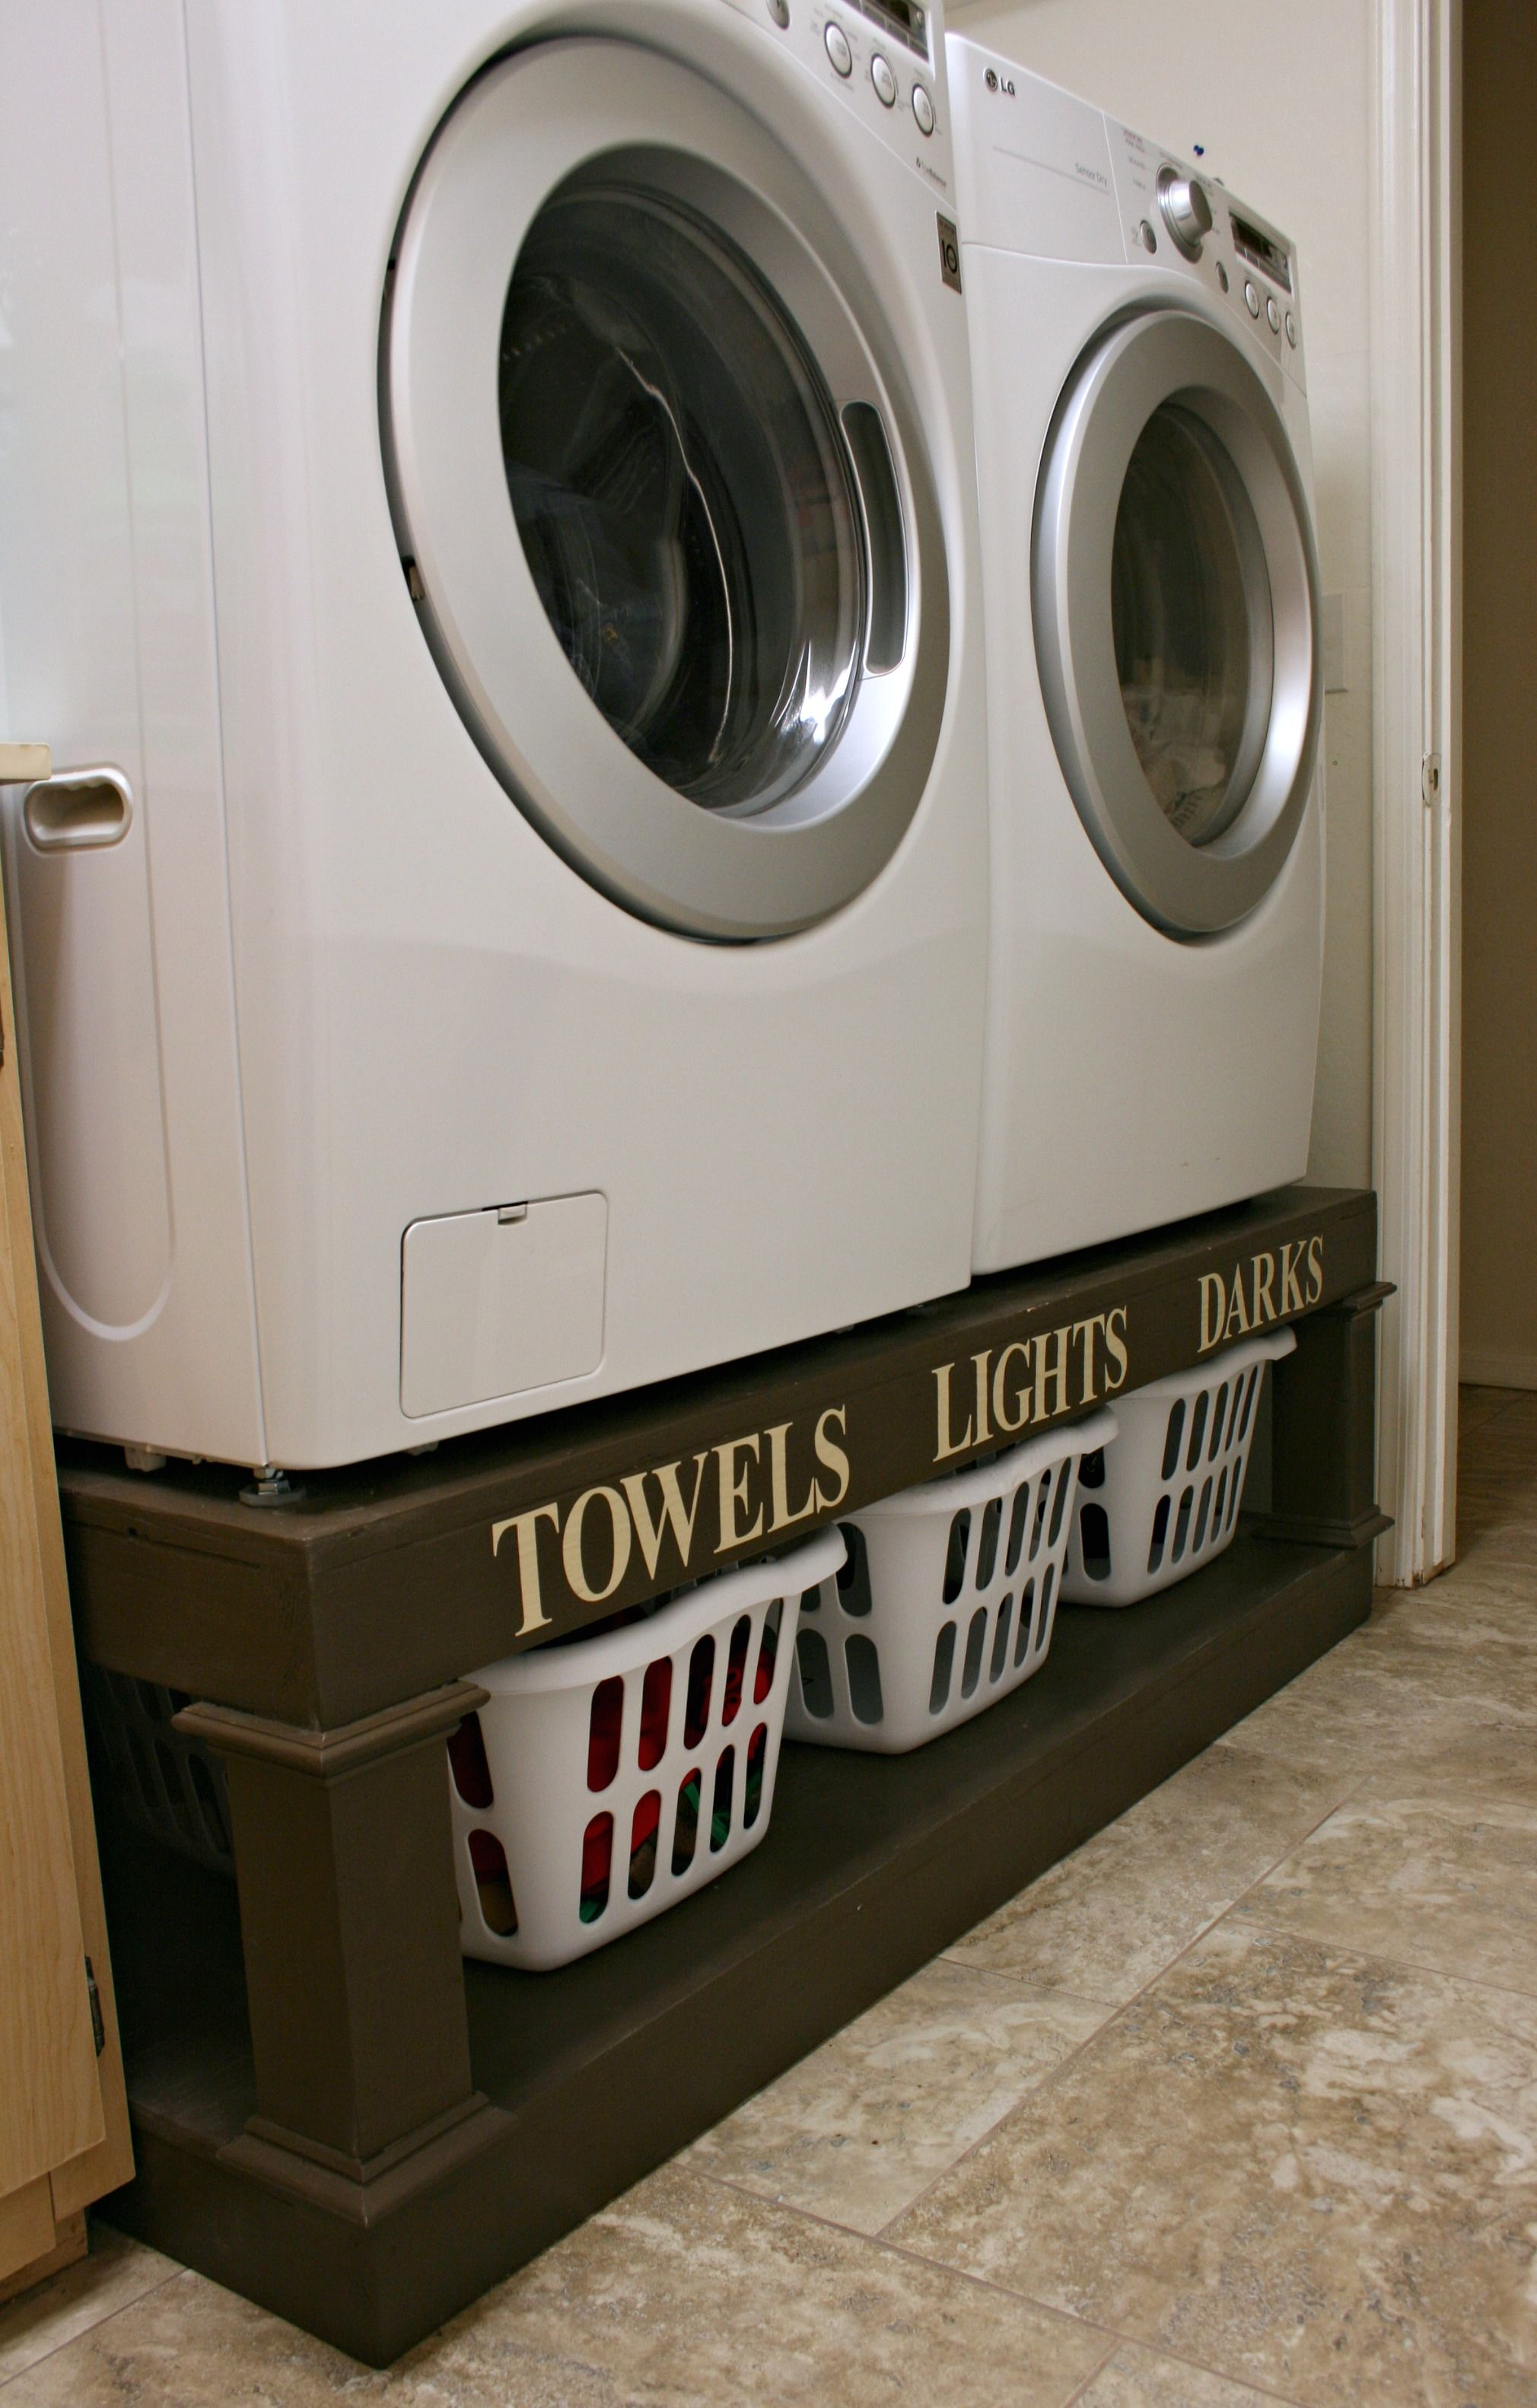 ana pedestal white washer and diy projects dryer washerdryer